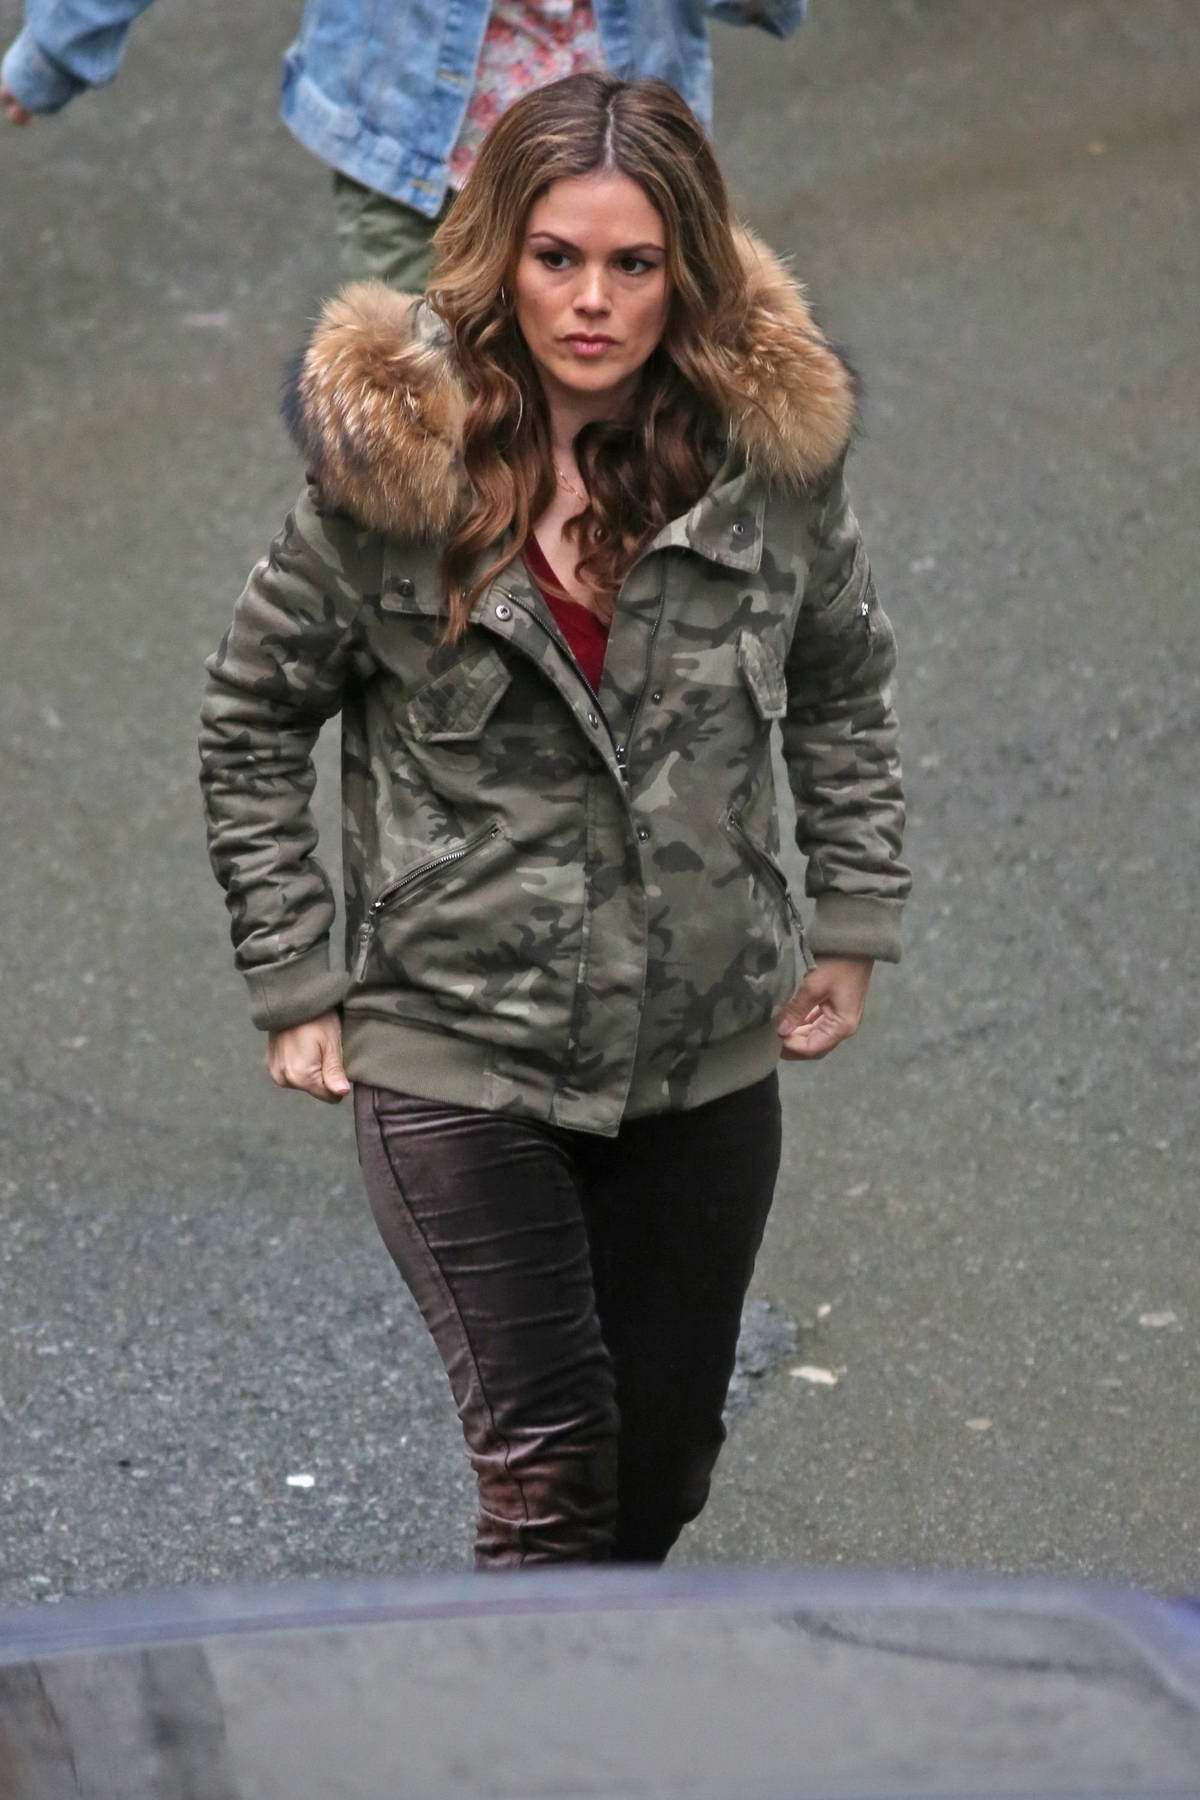 Rachel Bilson keeps warm in a fur trimmed camo parka while working in Vancouver, Canada